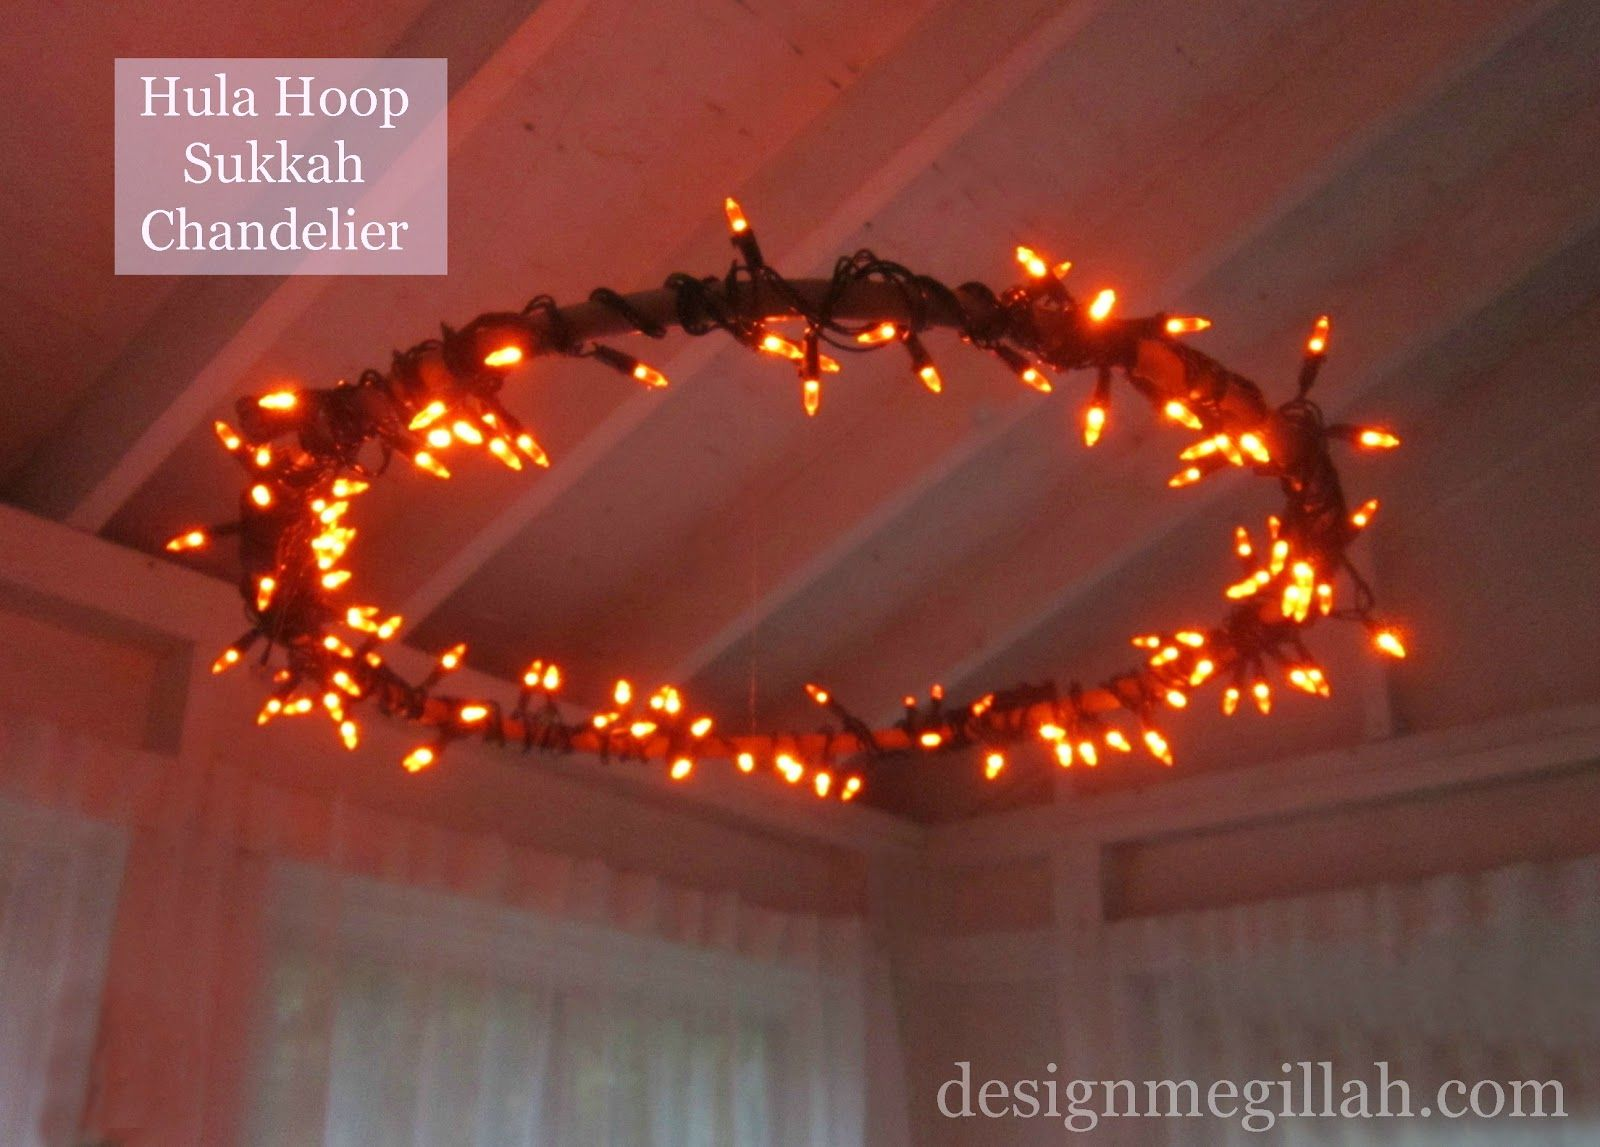 Diy hula hoop sukkah chandelier wow next year for sure light up your sukkah with this crafty diy sukkah chandelier aloadofball Choice Image